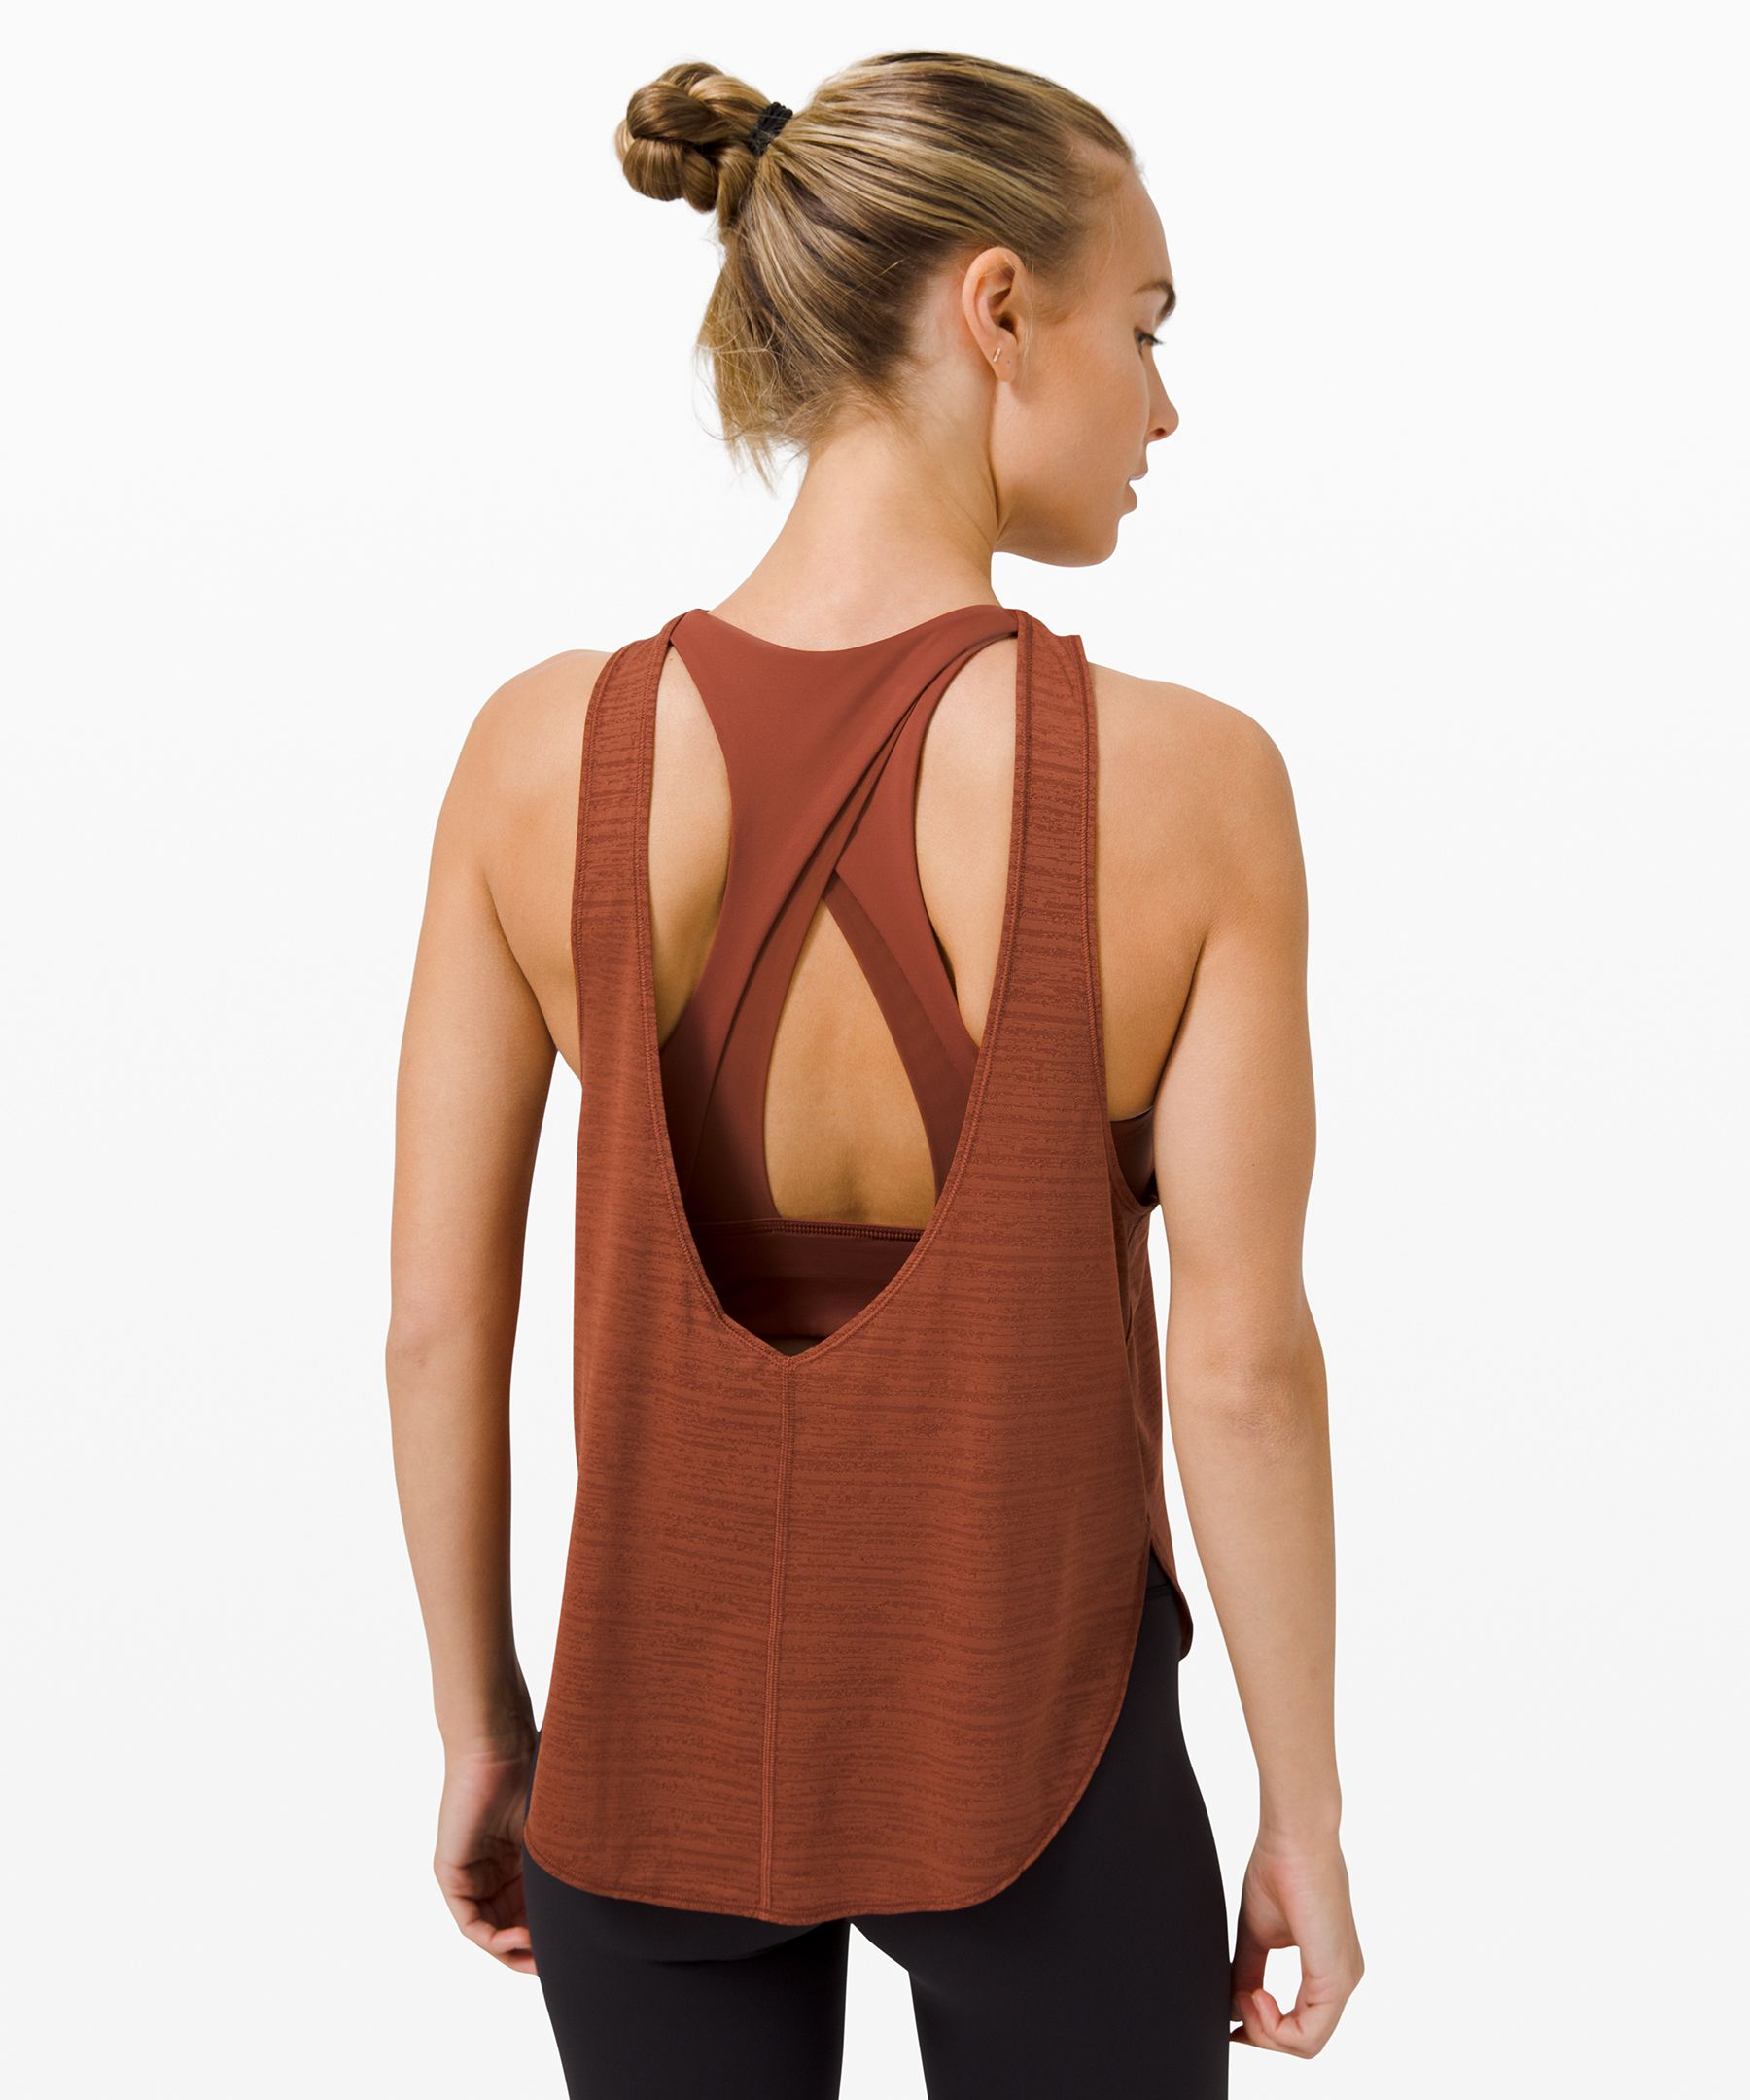 High Neck 2-in-1 Training Tank